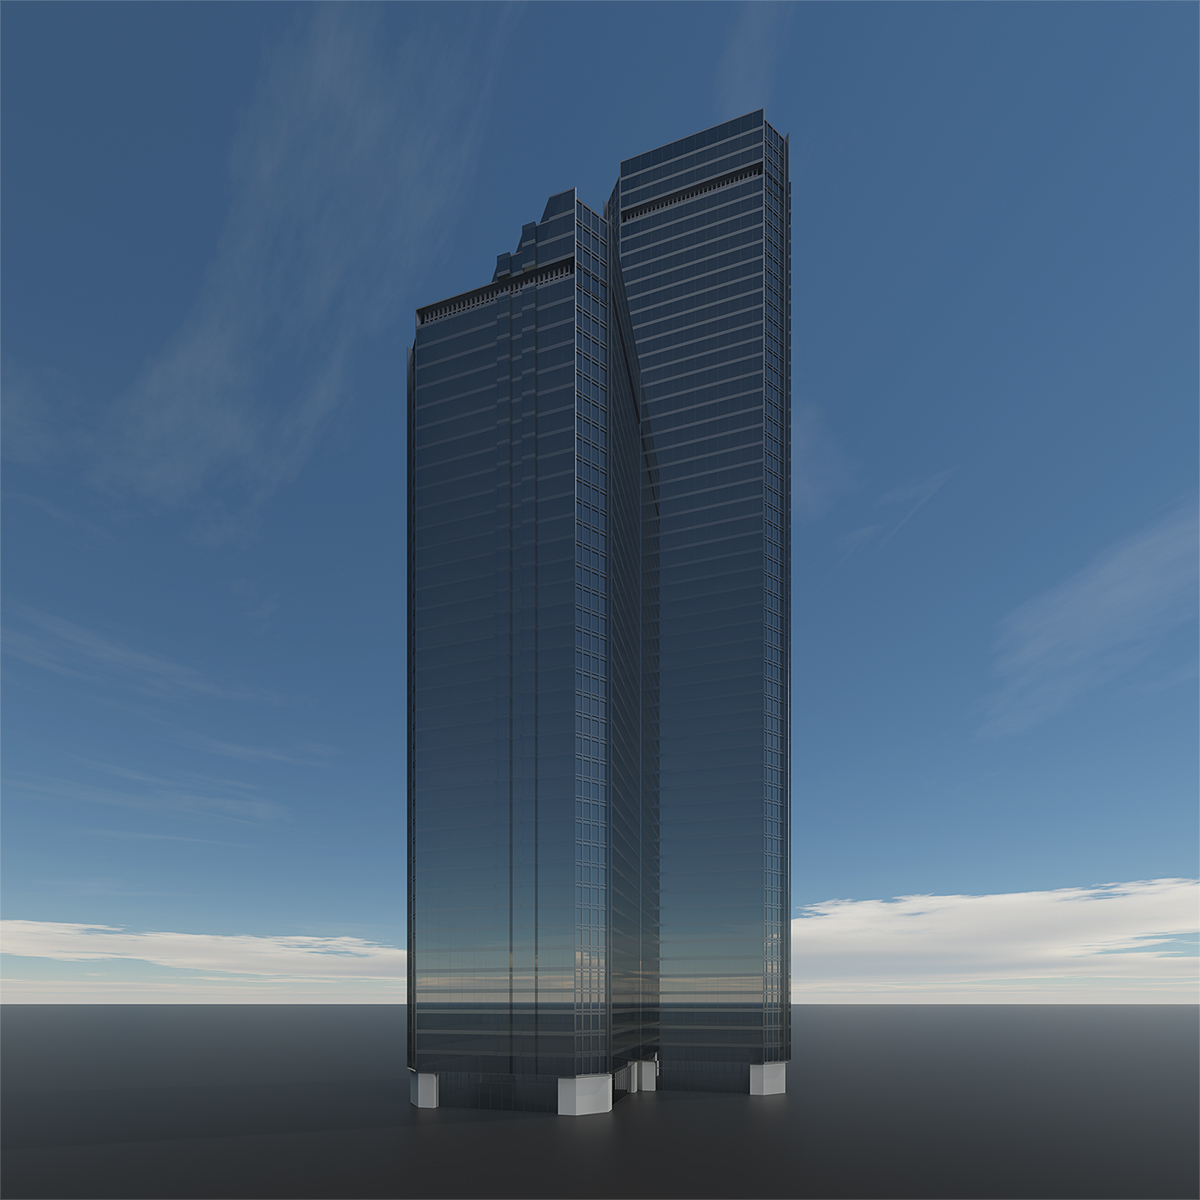 This was HomoSapiens SkyScrapers 009 1 - 2019 - This was HomoSapiens. SkyScrapers